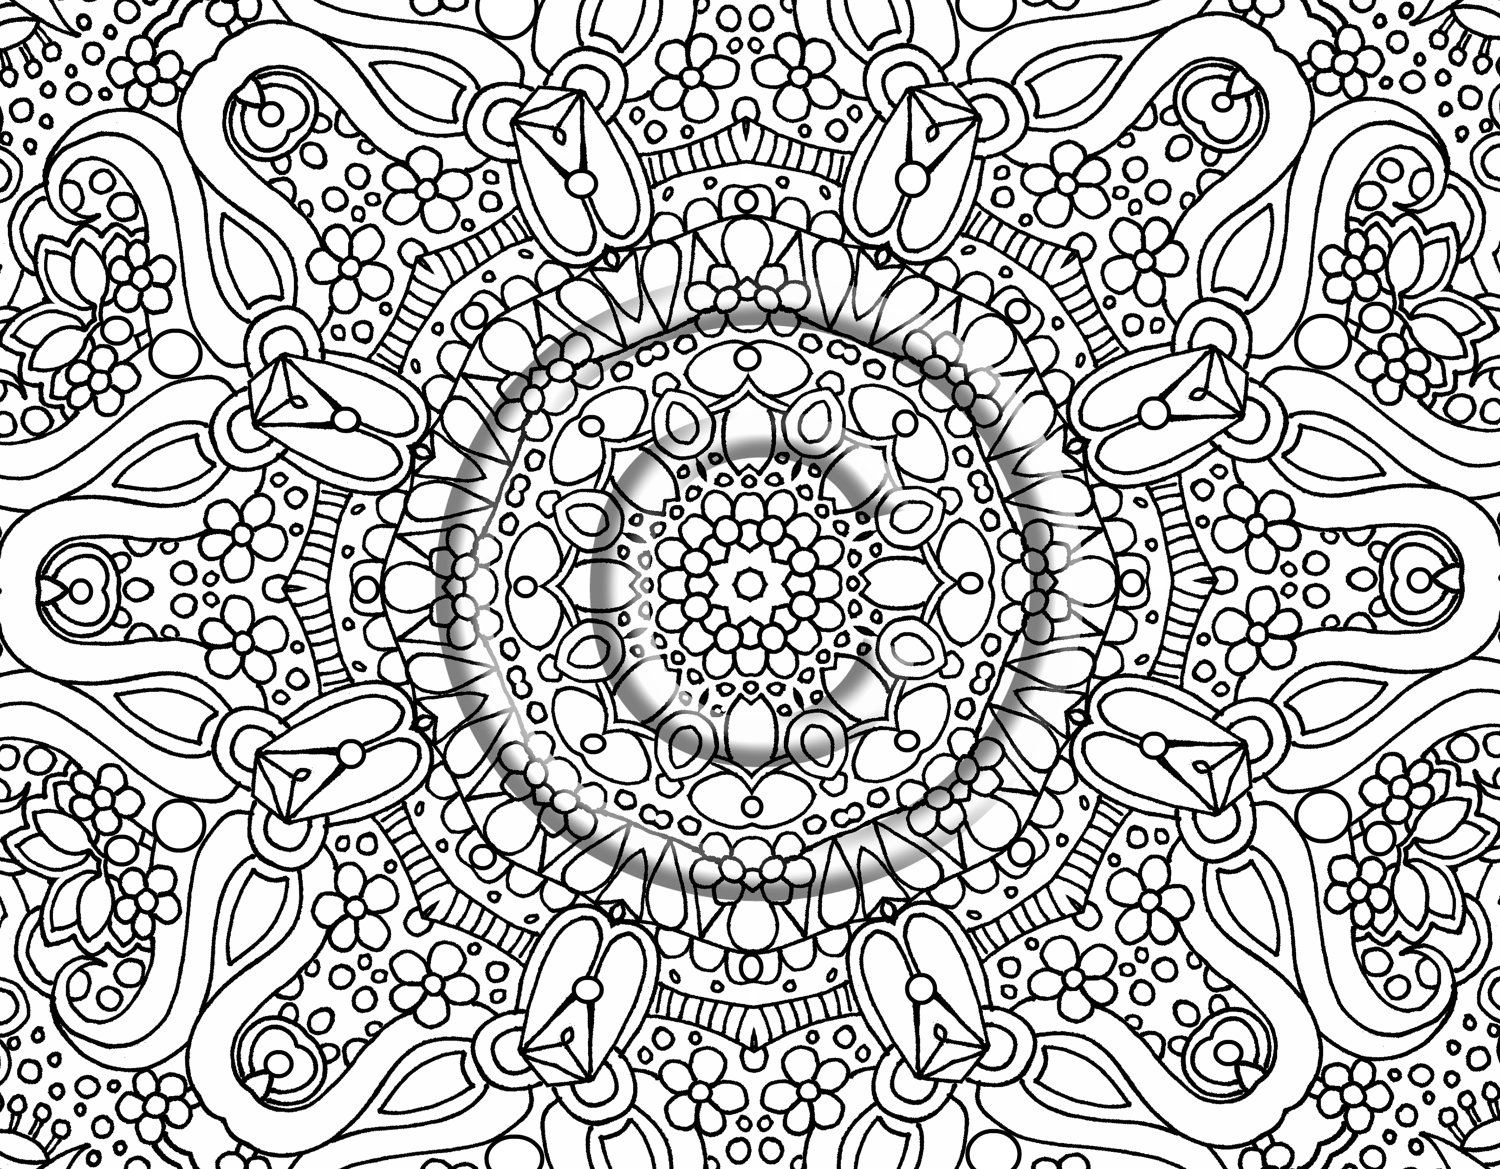 Detailed Coloring Pages For Adults Pleasing Free Printable Abstract Coloring Pages For Adults